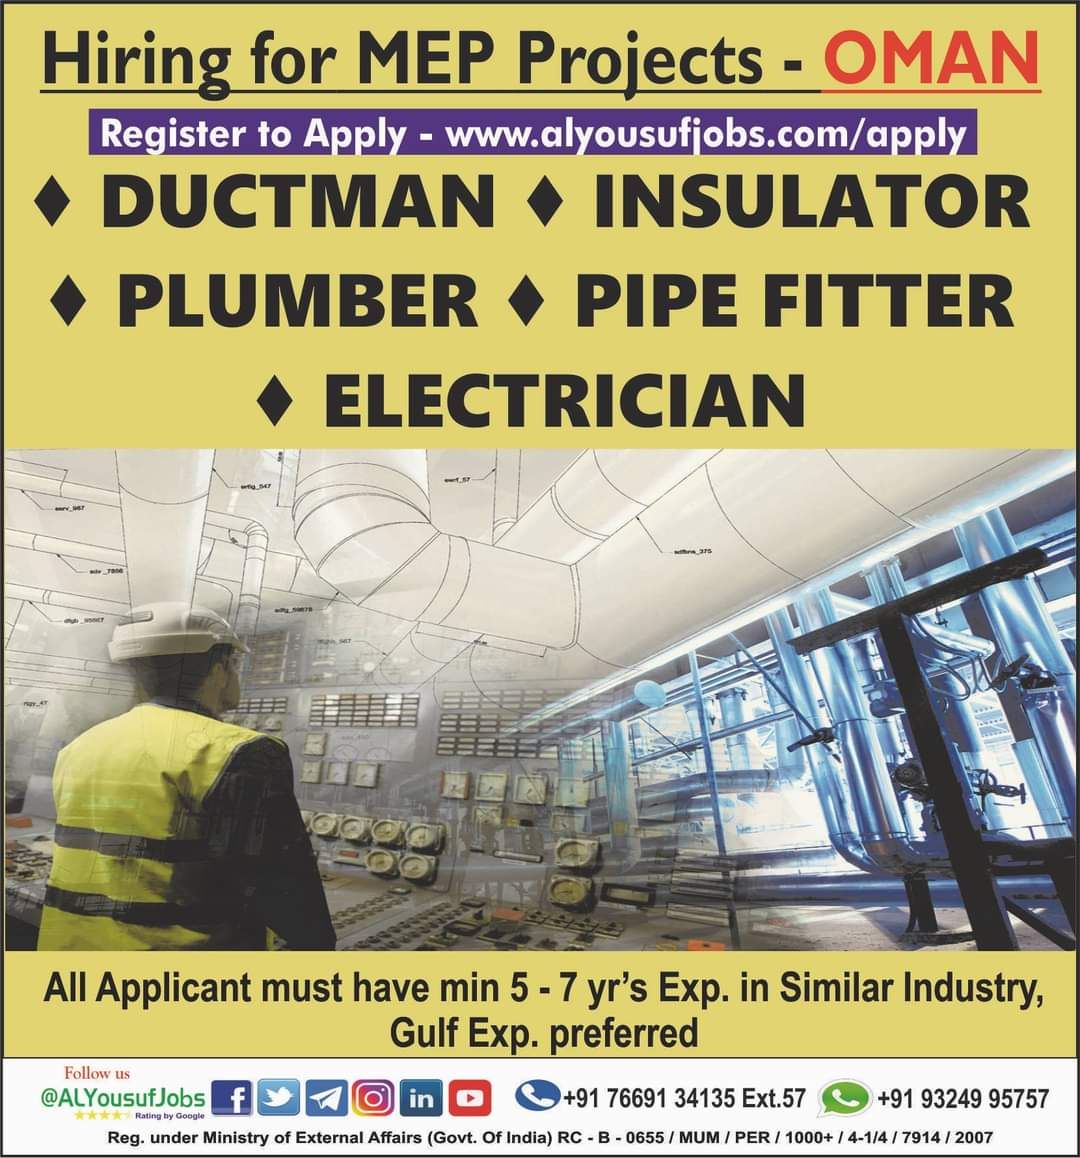 WALK-IN-INTERVIEW IN MUMBAI FOR A MEP PROJECTS AT OMAN